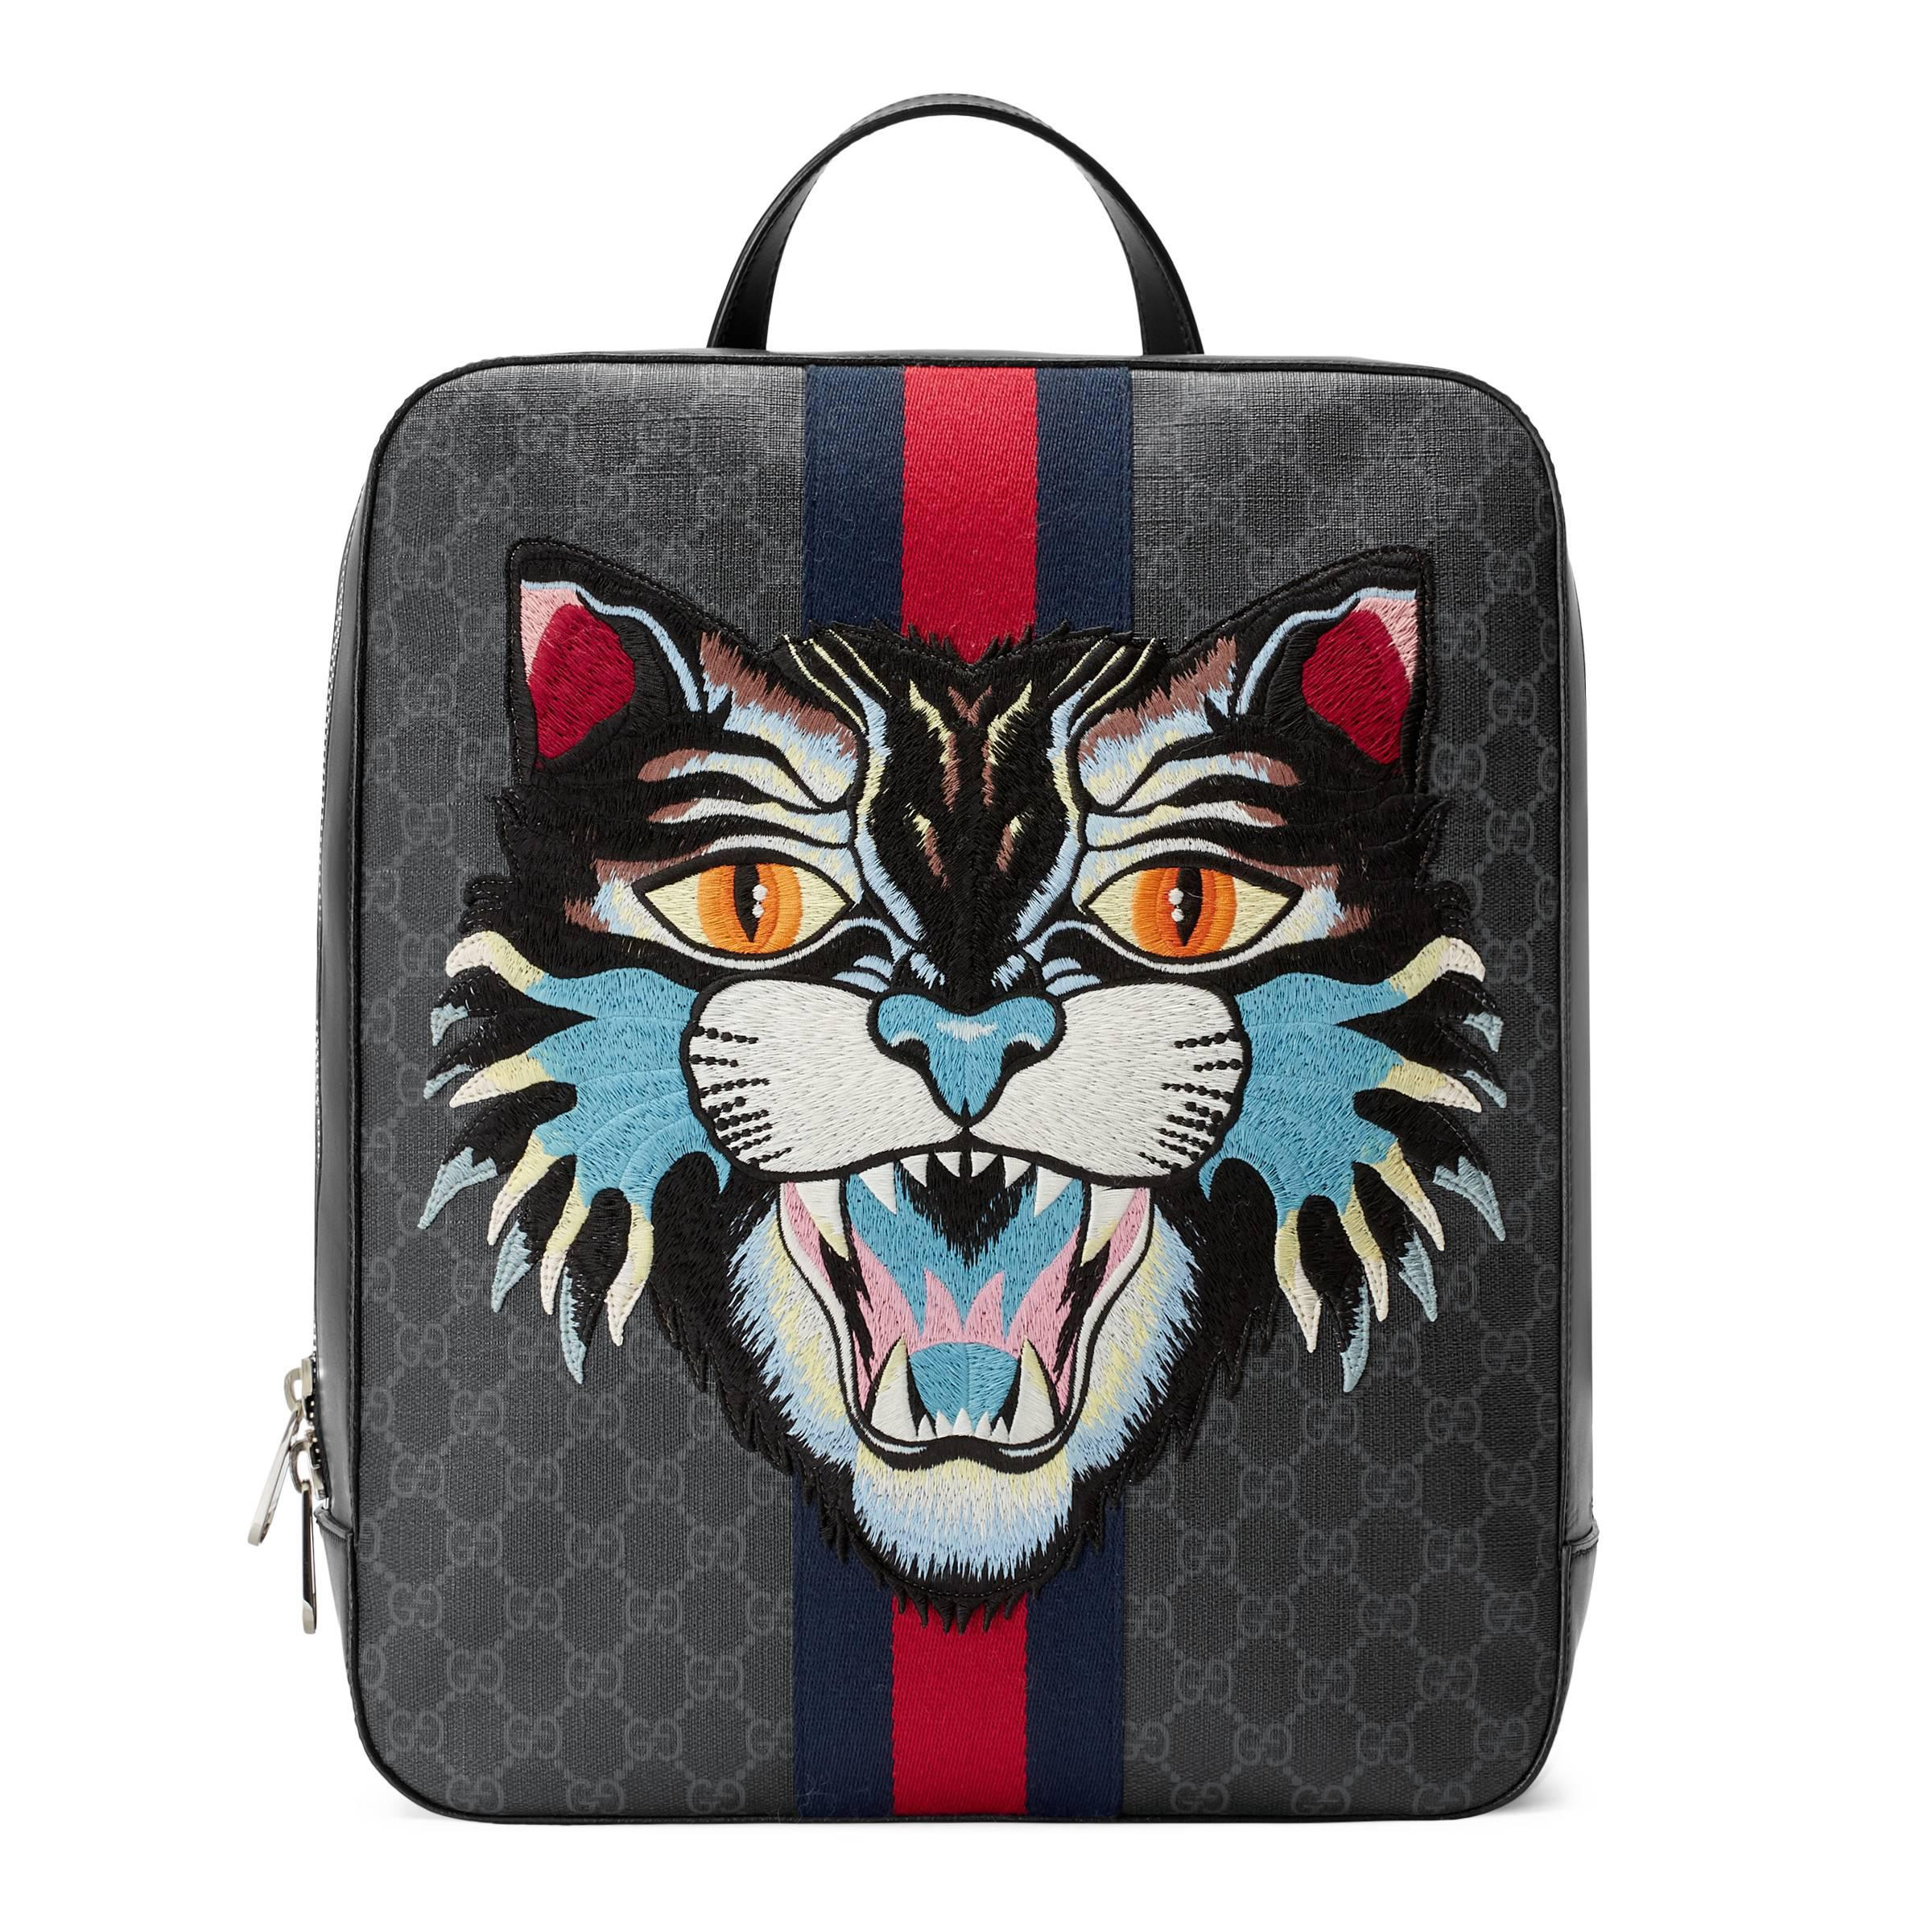 f2a7ad4a012 Gucci Gg Supreme Backpack With Angry Cat for Men - Lyst